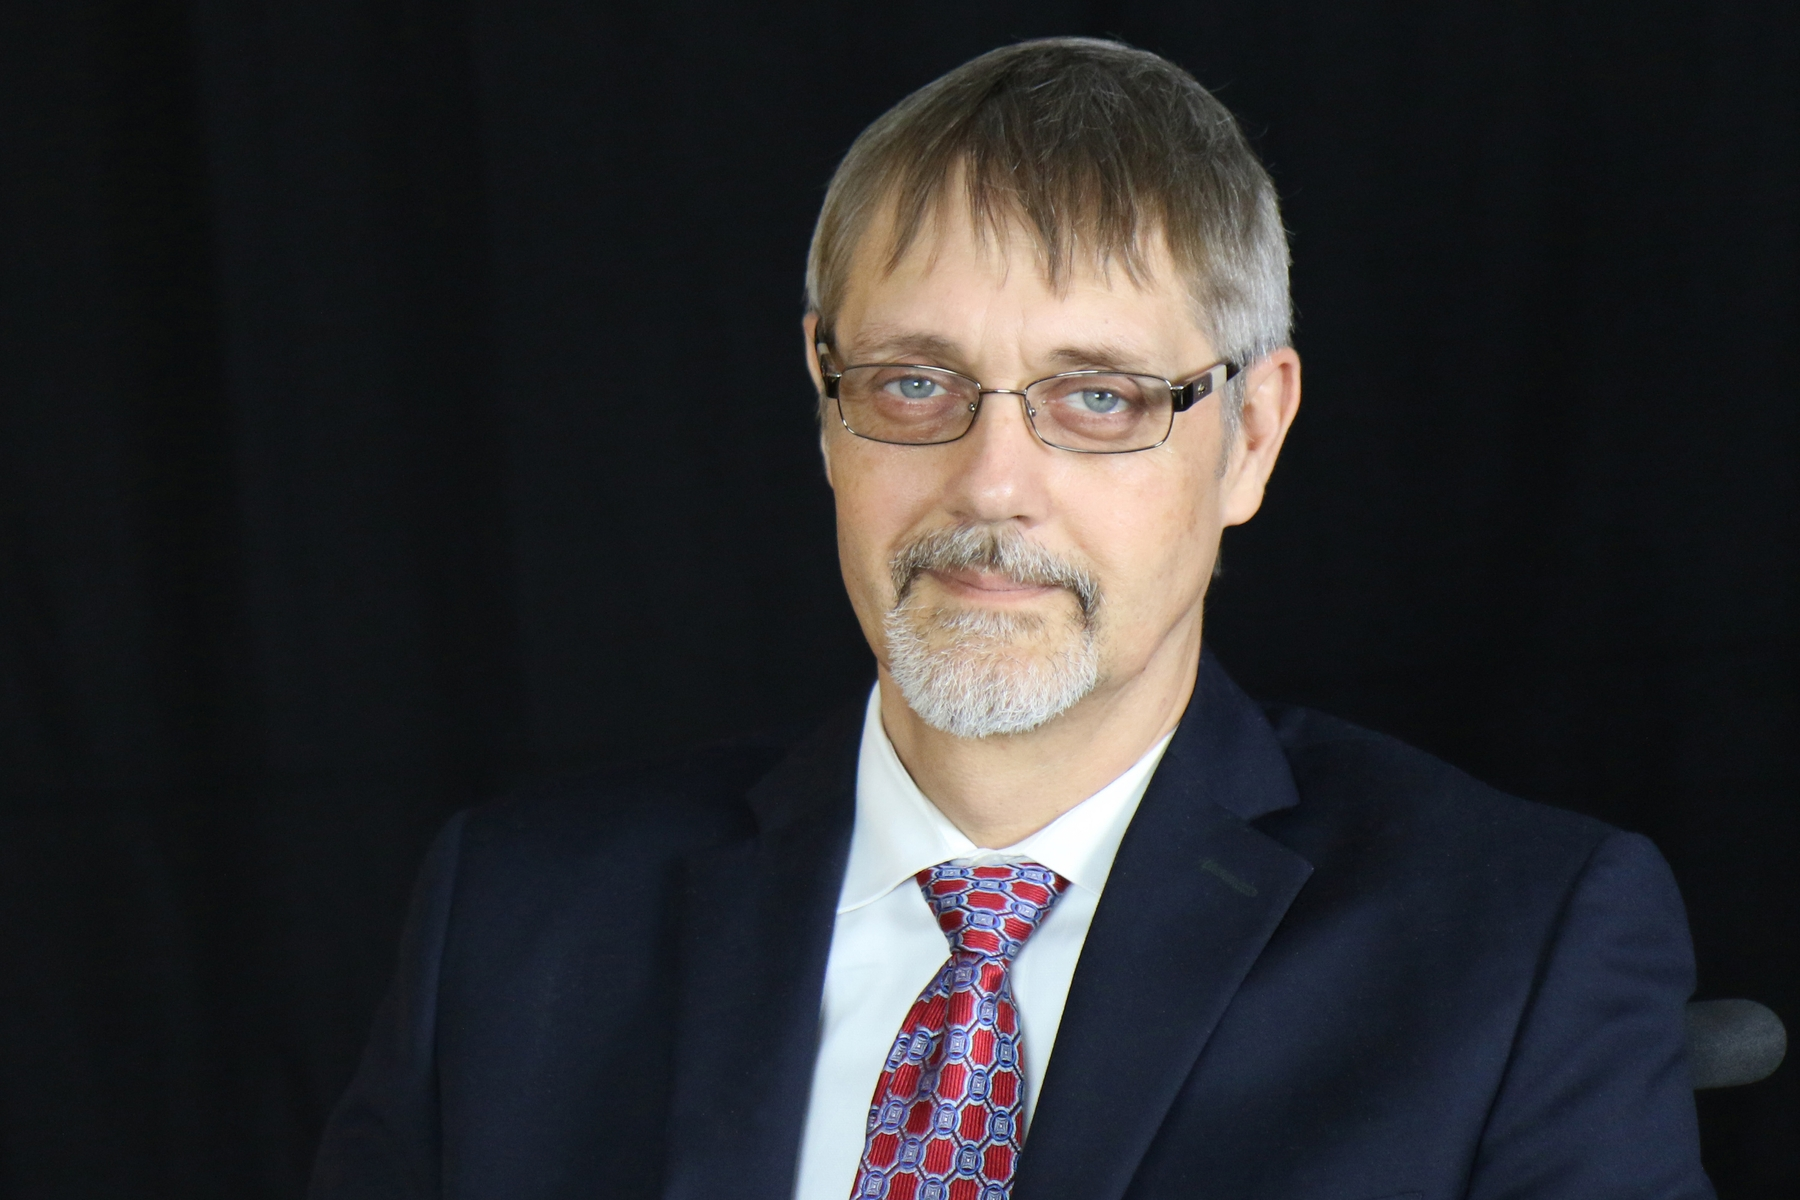 Photograph of John Tschida, who is Acting Executive Director of AUCD and one of the authors of this article.